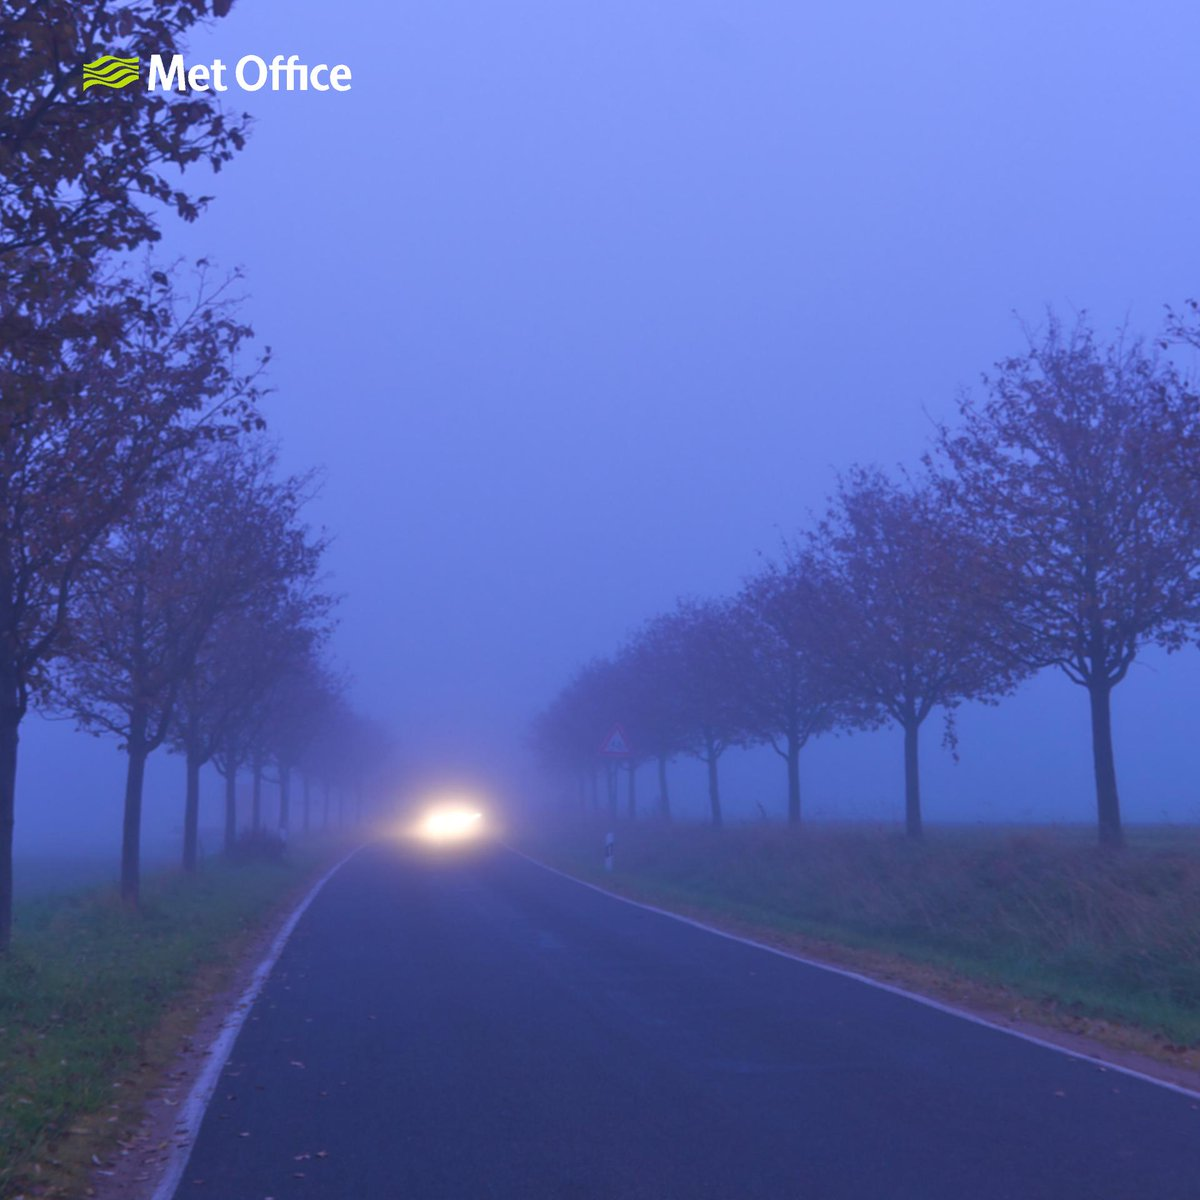 test Twitter Media - RT @metoffice: As well as a chilly start on Friday, there may be some #fog patches around for the morning rush hour https://t.co/72XOQwaLrU